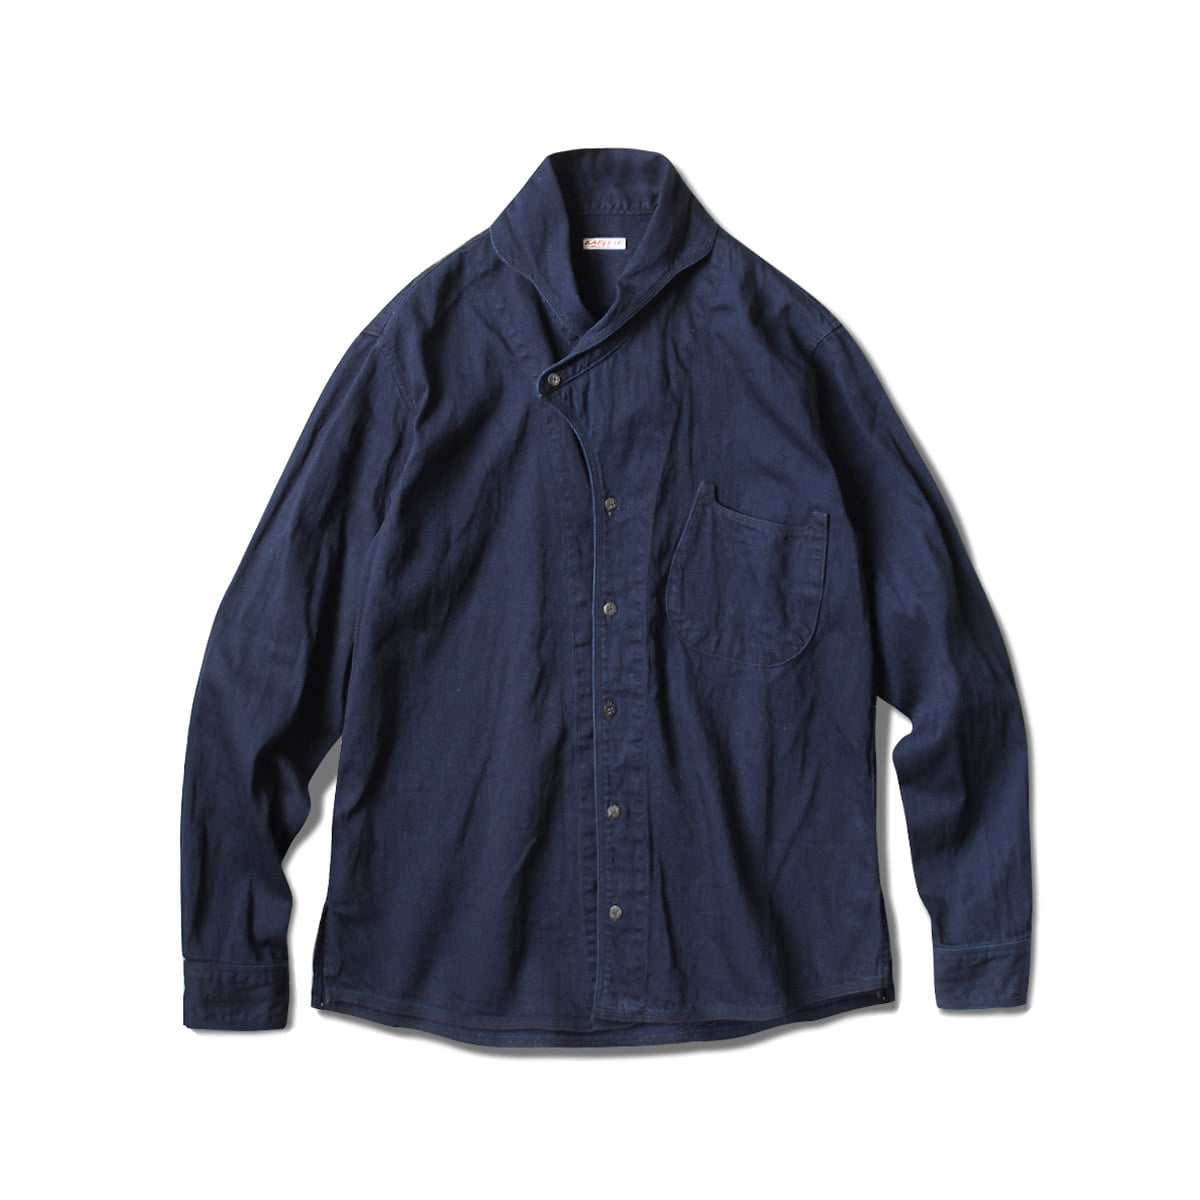 [KAPITAL] 8OZIDG X IDG DENIM DUKE COLLAR SHIRT 'IDG'